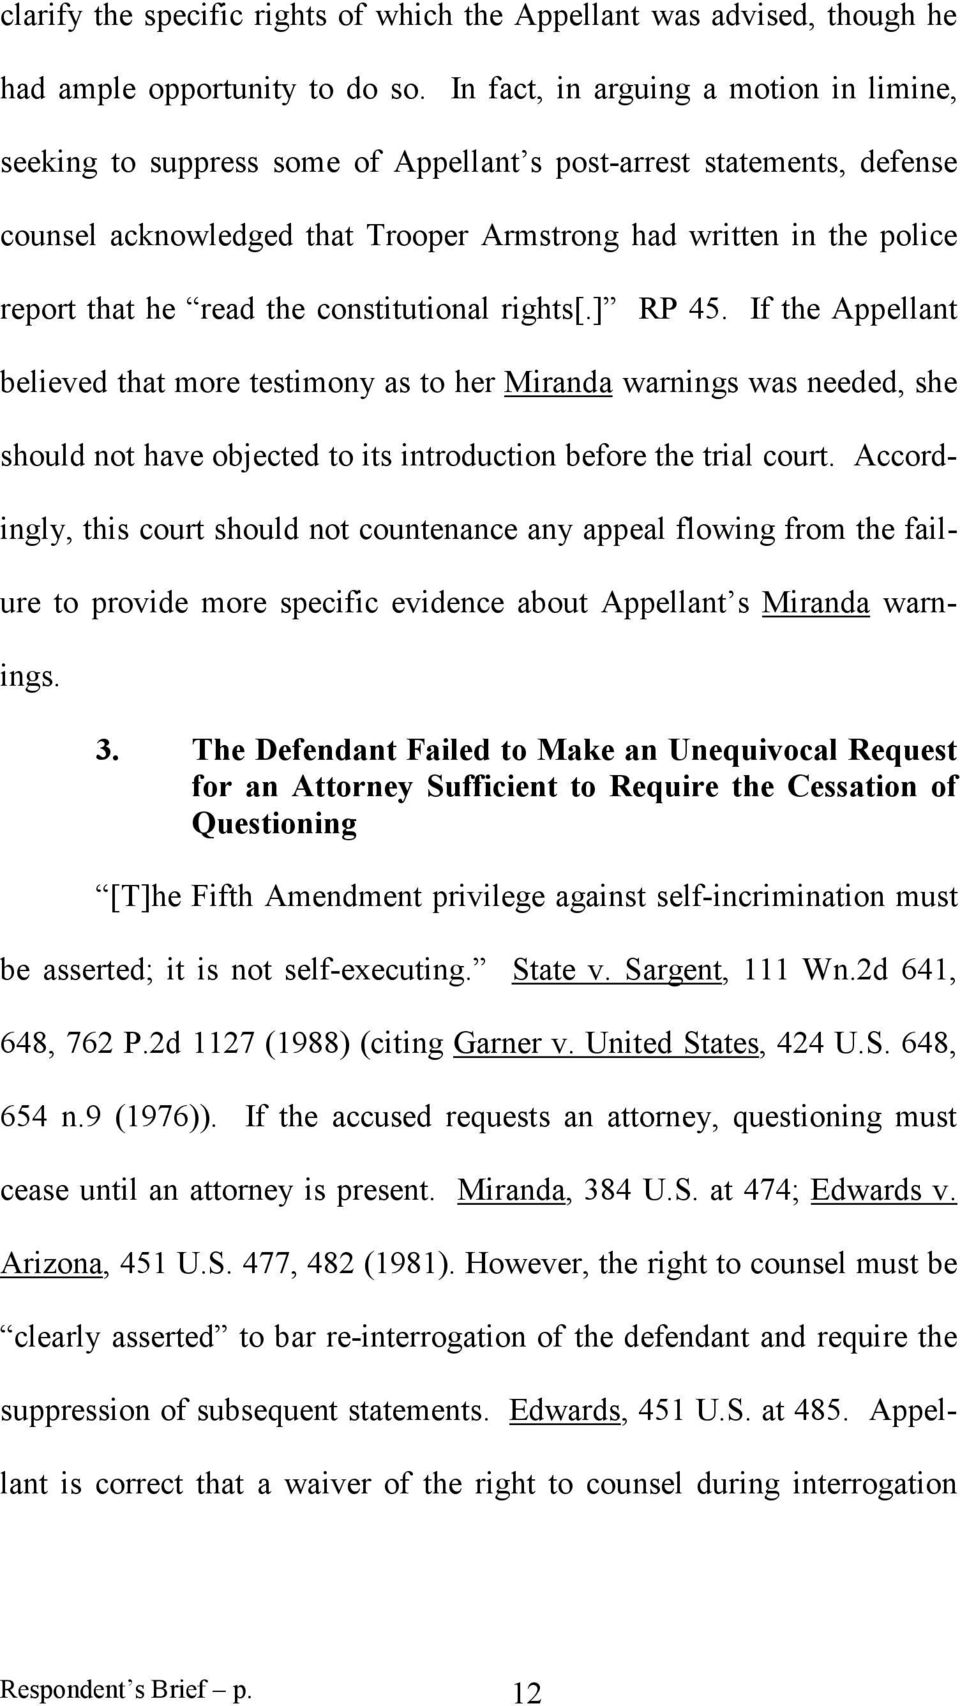 read the constitutional rights[.] RP 45. If the Appellant believed that more testimony as to her Miranda warnings was needed, she should not have objected to its introduction before the trial court.